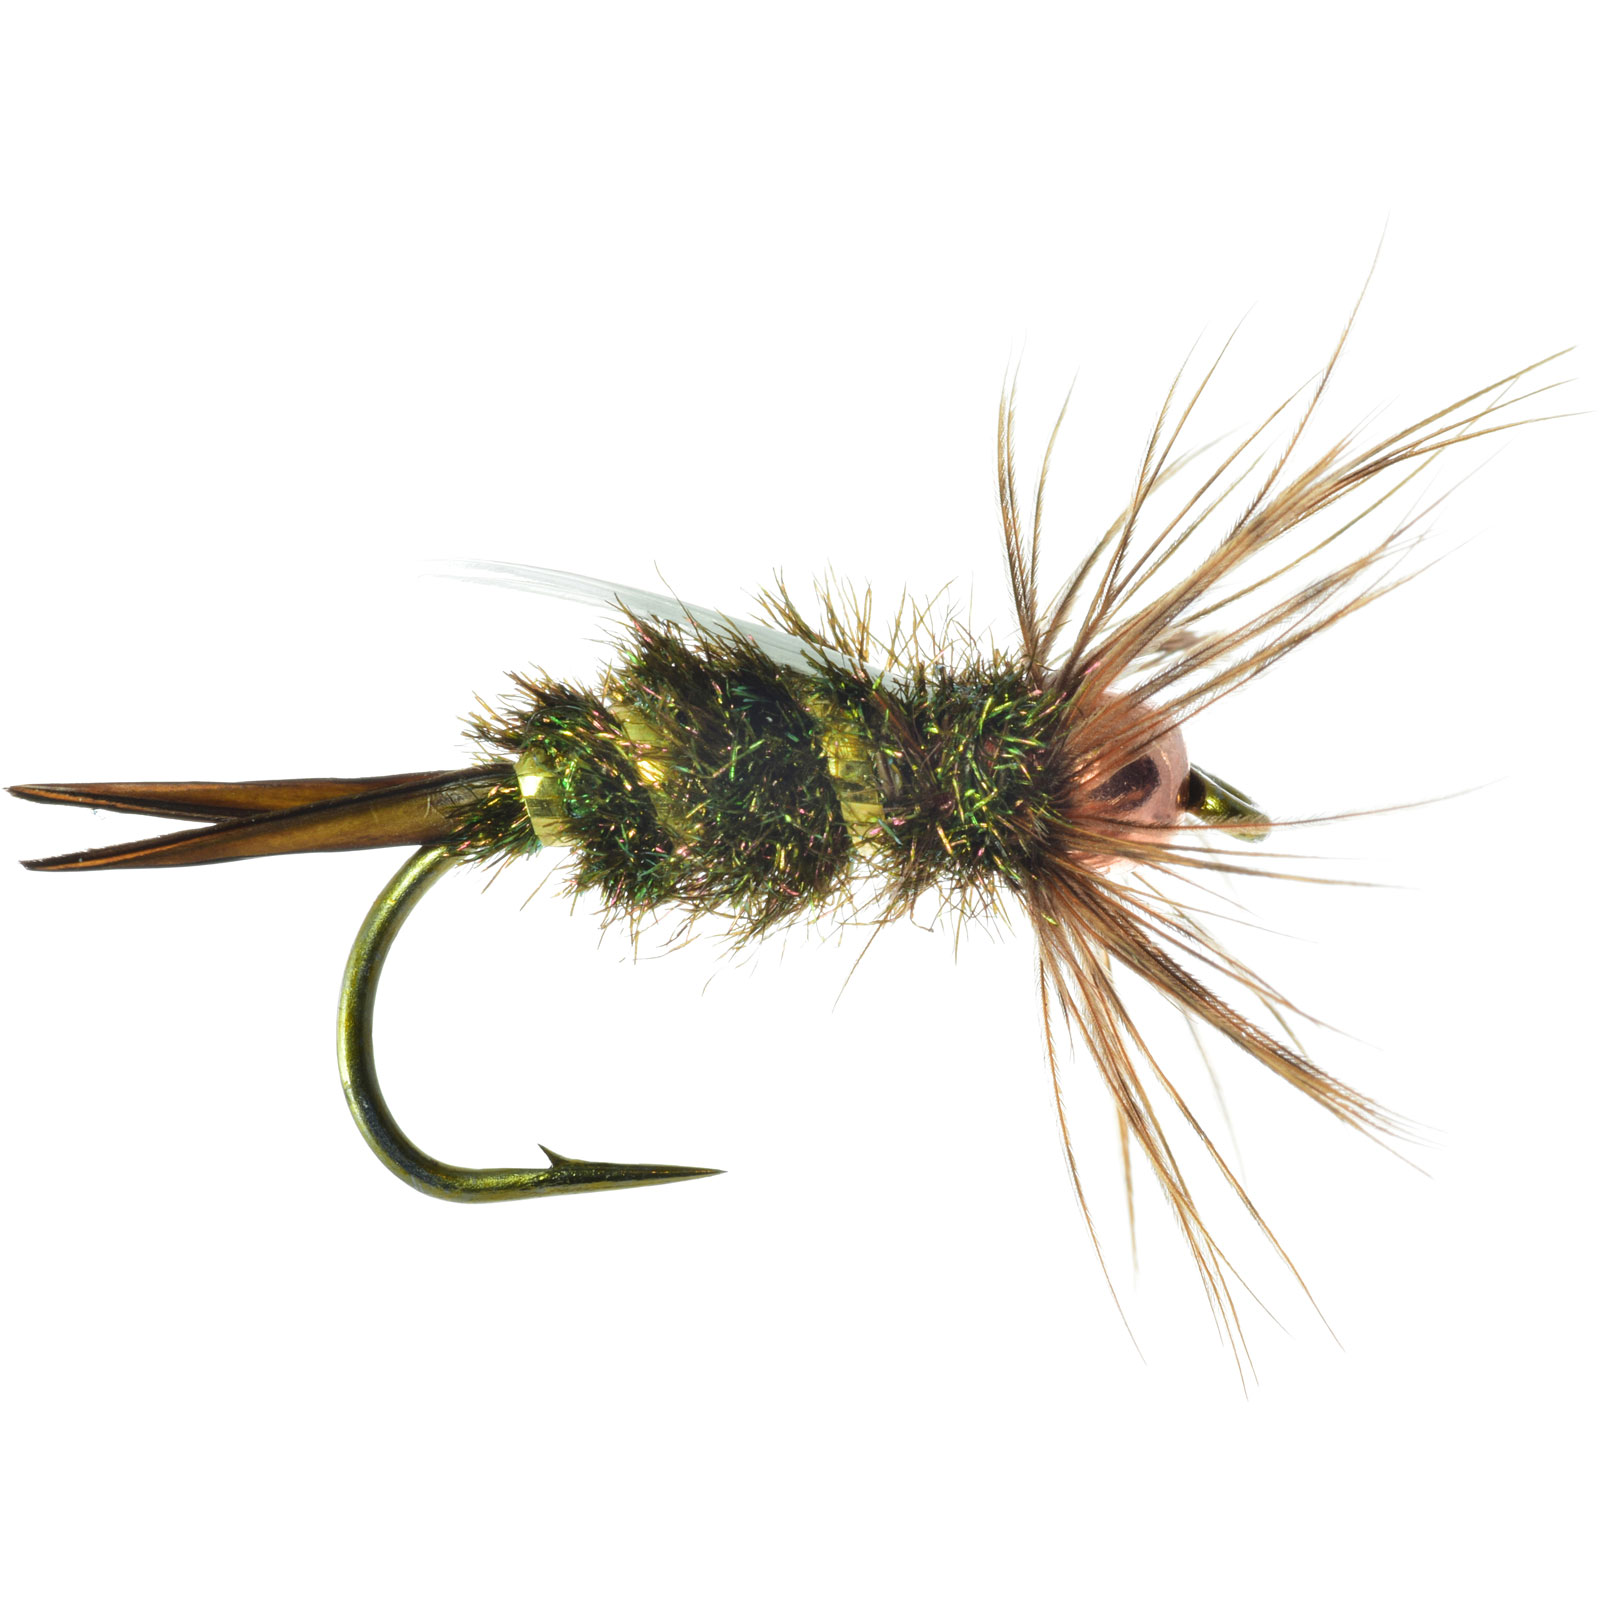 Umpqua tenkara prince copper simple fly fishing pattern ebay for Simple fly fishing